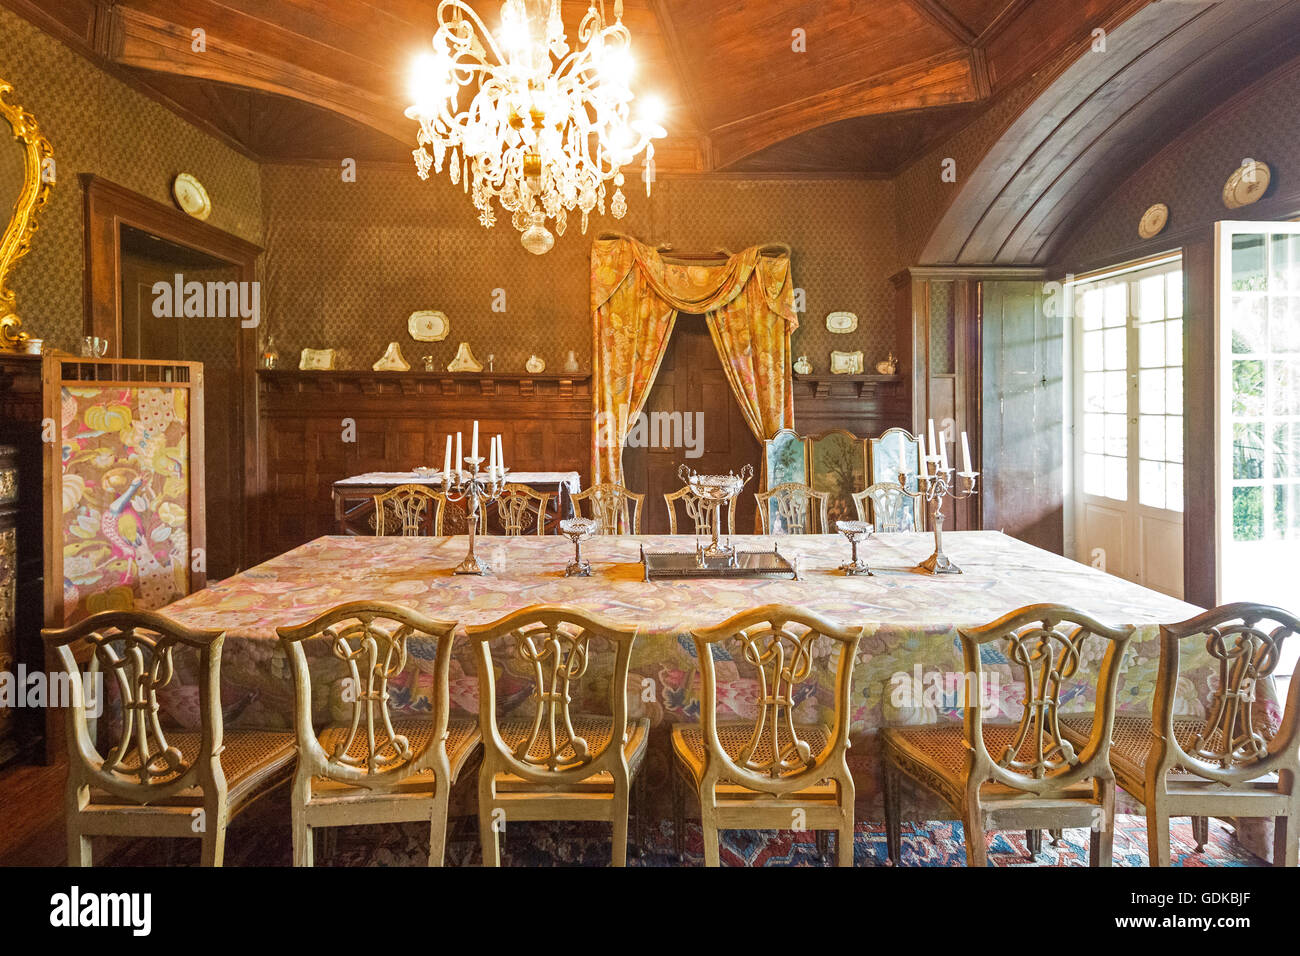 Salon, dining table, Casa de Sezim, chandeliers, Camporeal vineyard in the Minho, the Garden of Portugal, Nespereira, - Stock Image